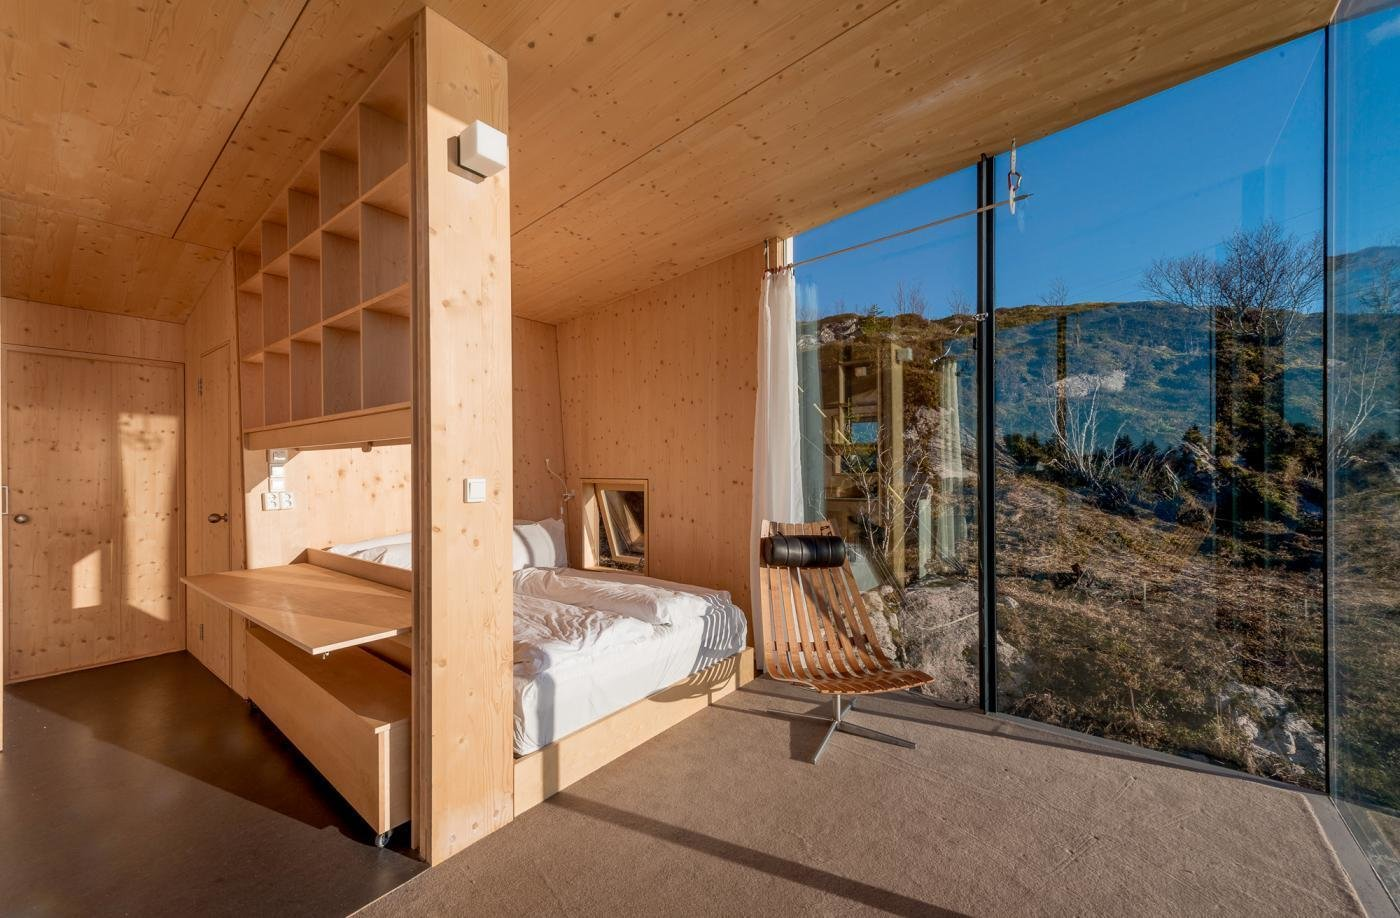 Each hut consists of two bedrooms with double beds, a small alcove, bathroom, shower, and small kitchen. Stinessen made sure to provide enough built-in storage for visitors, while also keeping the surfaces natural and raw.